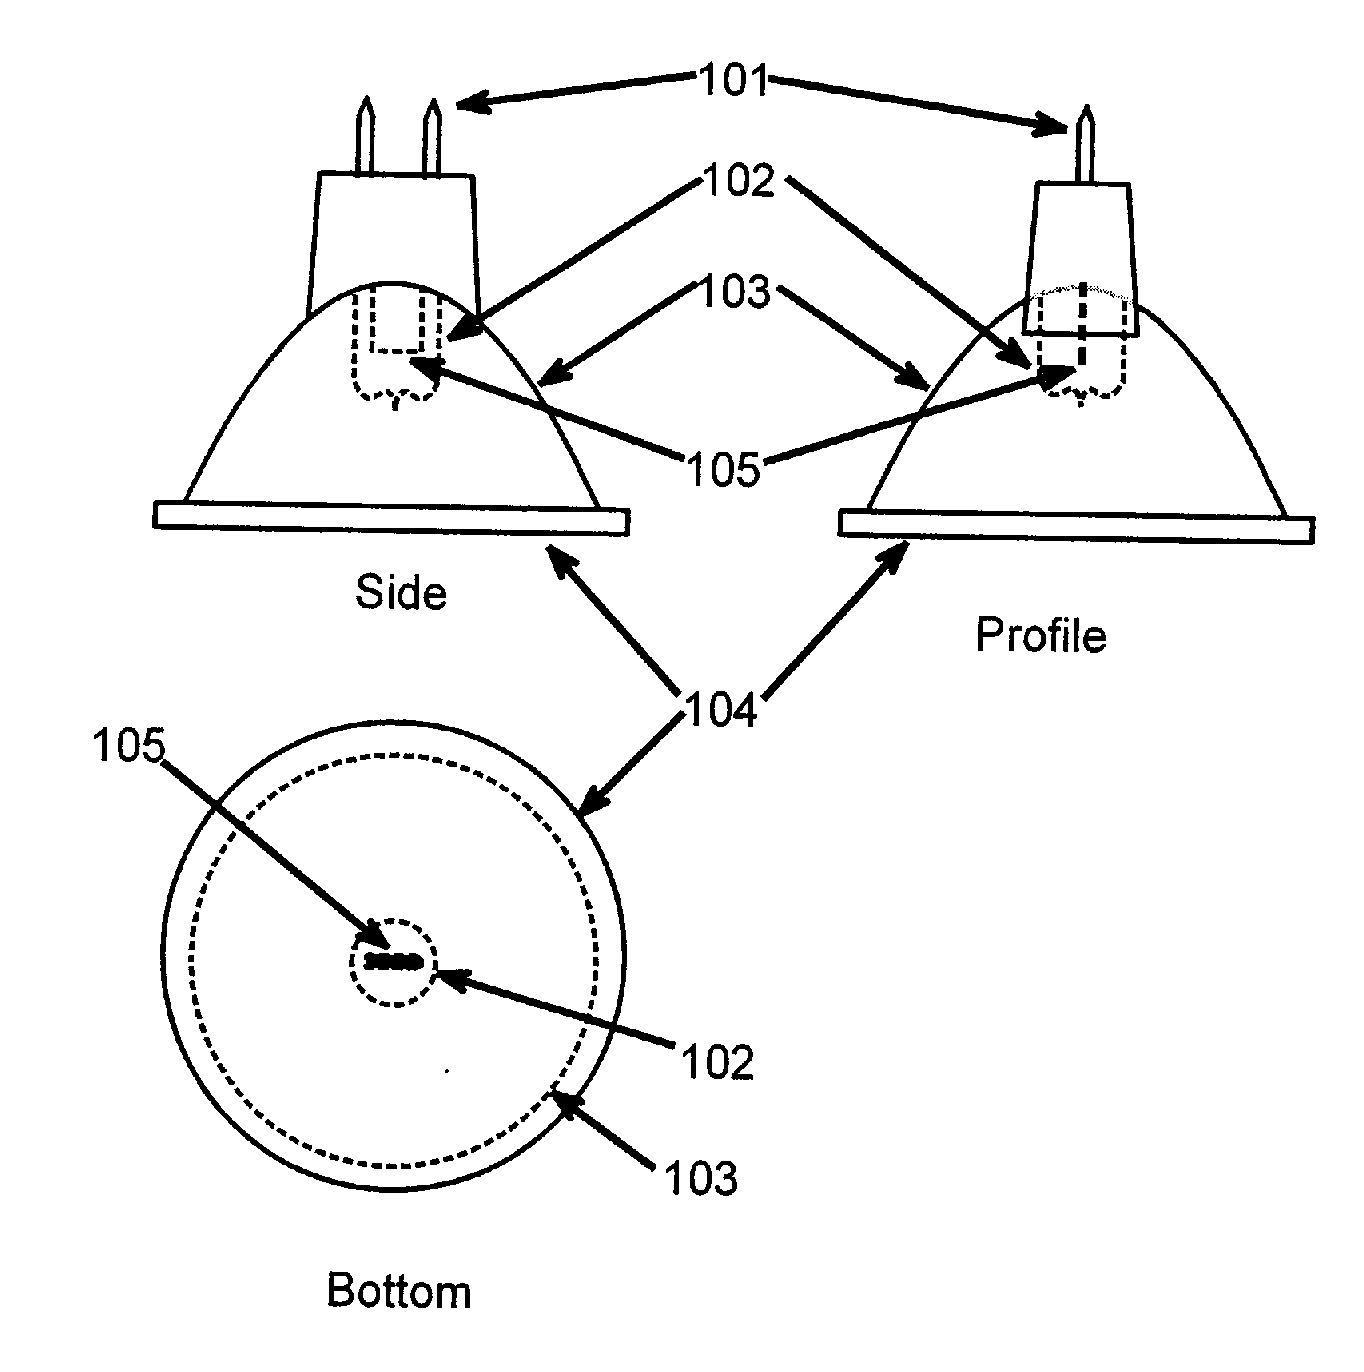 US6685339 together with US20110286200 furthermore Led Symbol in addition Light Emitting diode further US8672516. on led light emitting diode bulb lamp